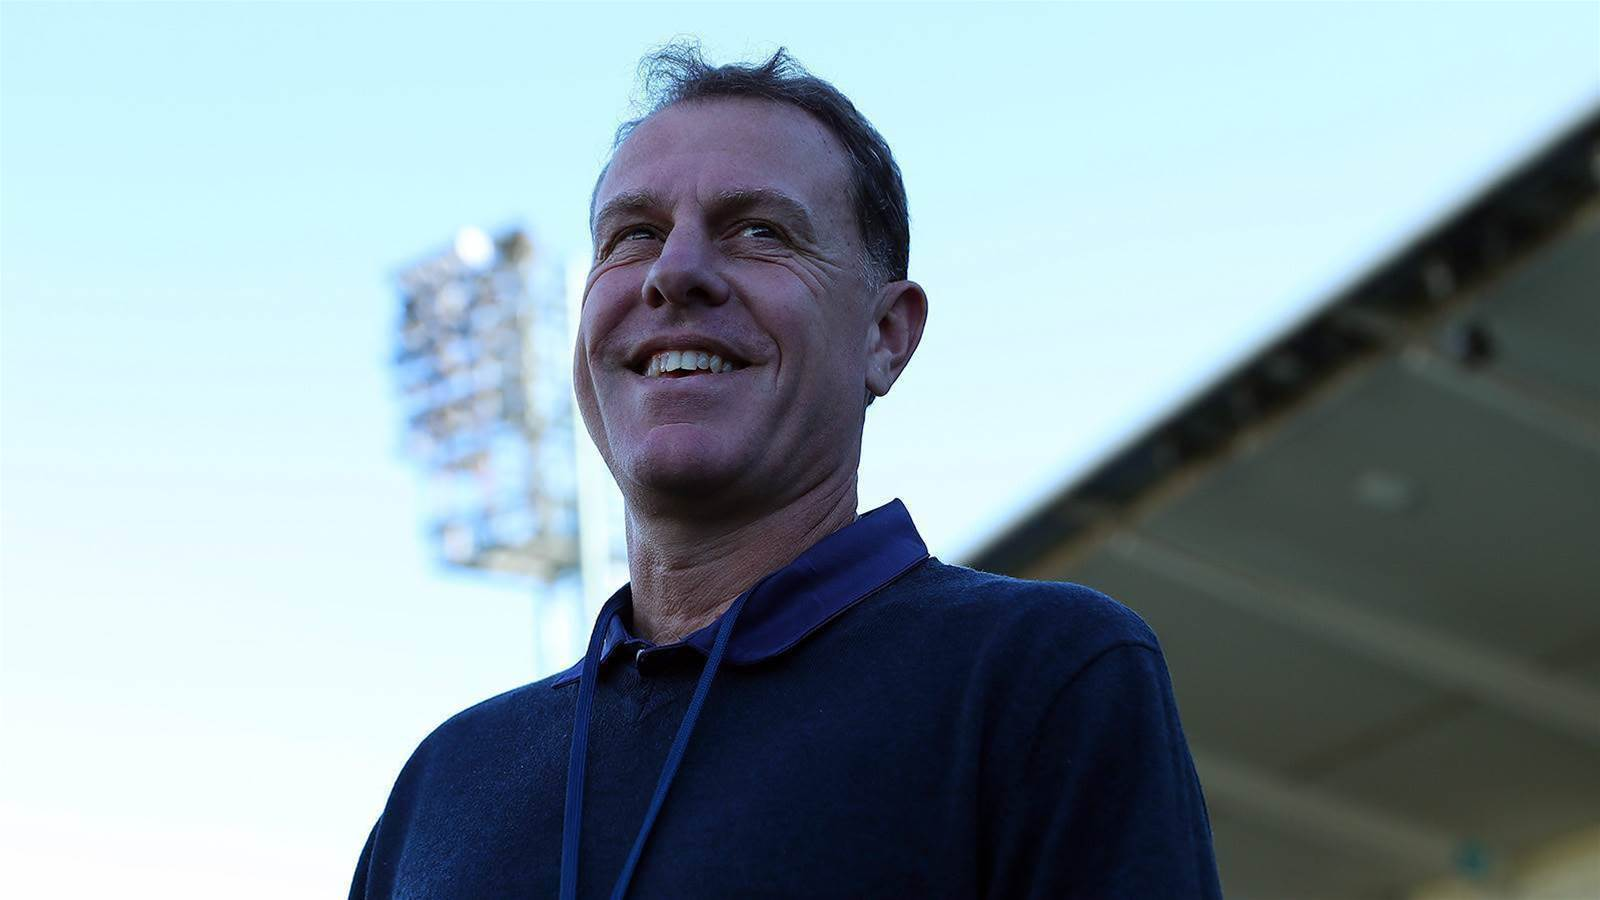 Stajcic signs on at the Mariners until 2022